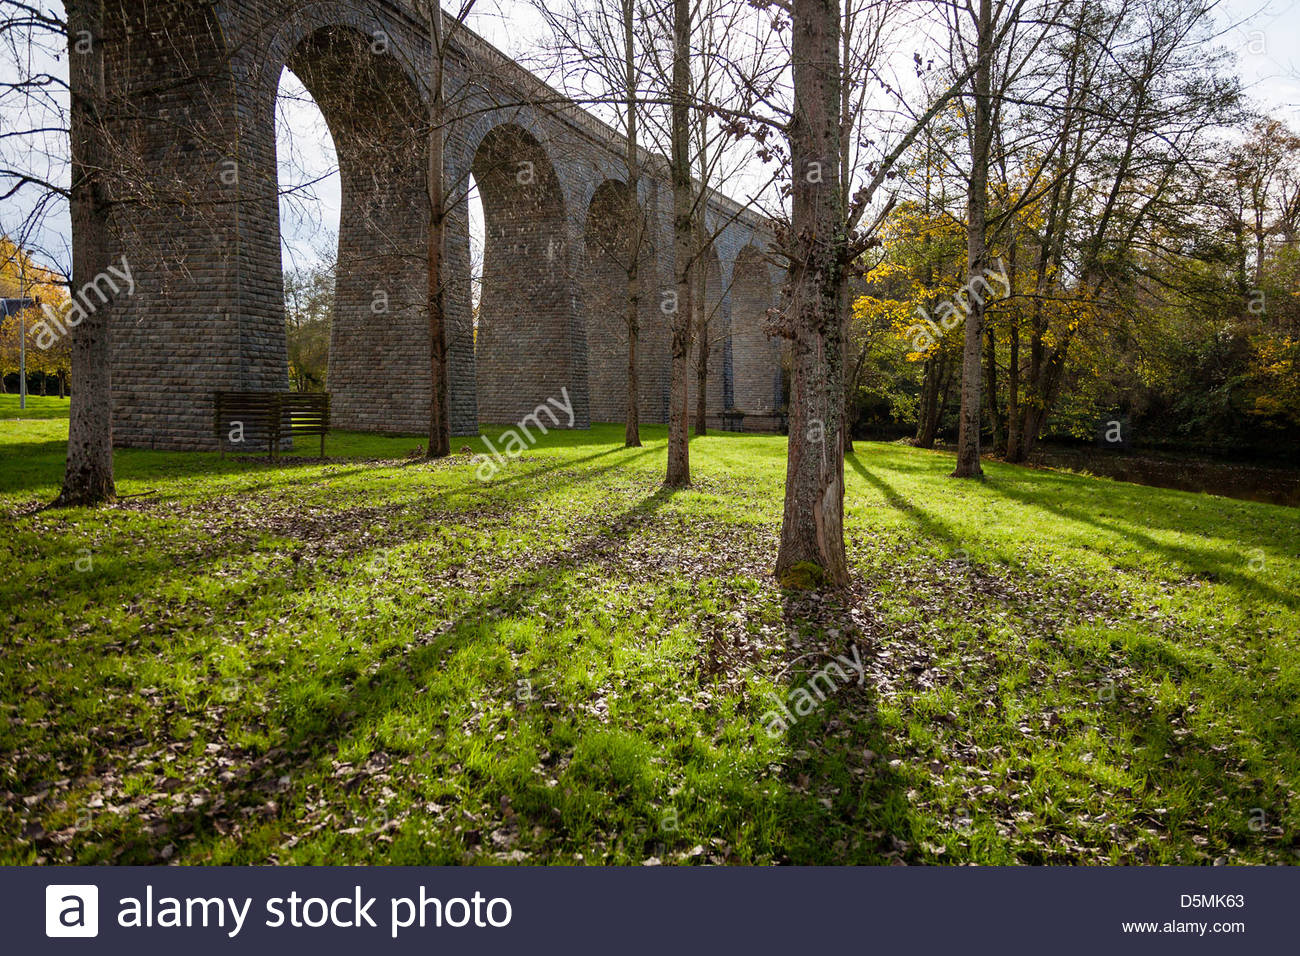 Viaduct at Glénic in late afternoon sunshine, La Creuse, Limousin, France Stock Photo